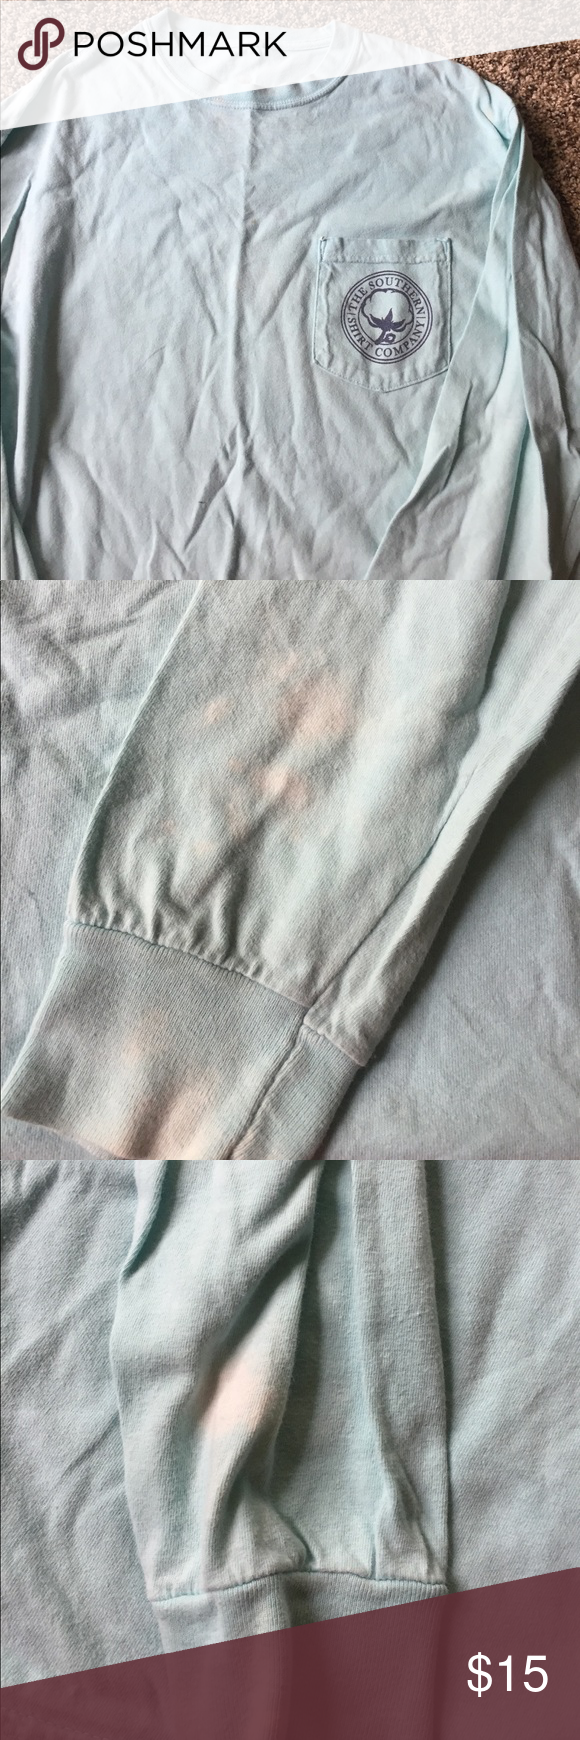 The southern shirt company Has bleach stains from left over